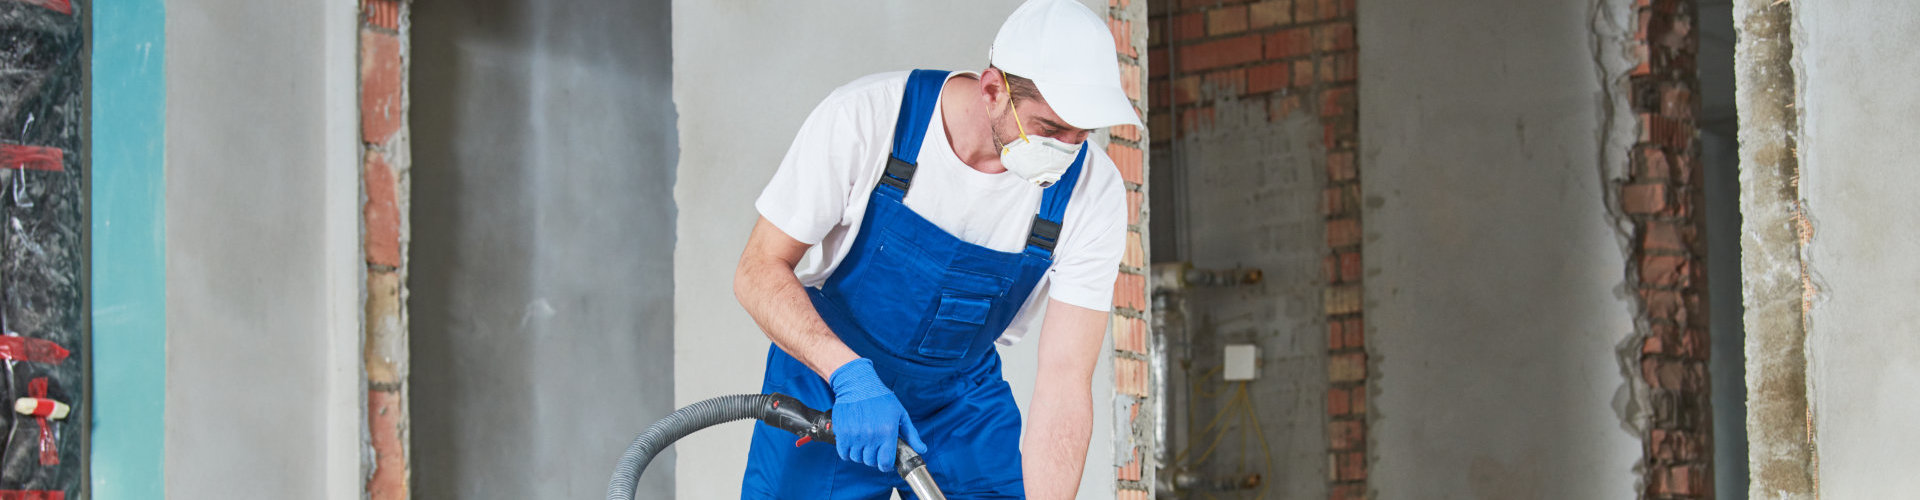 man wearing protective uniform while cleaning